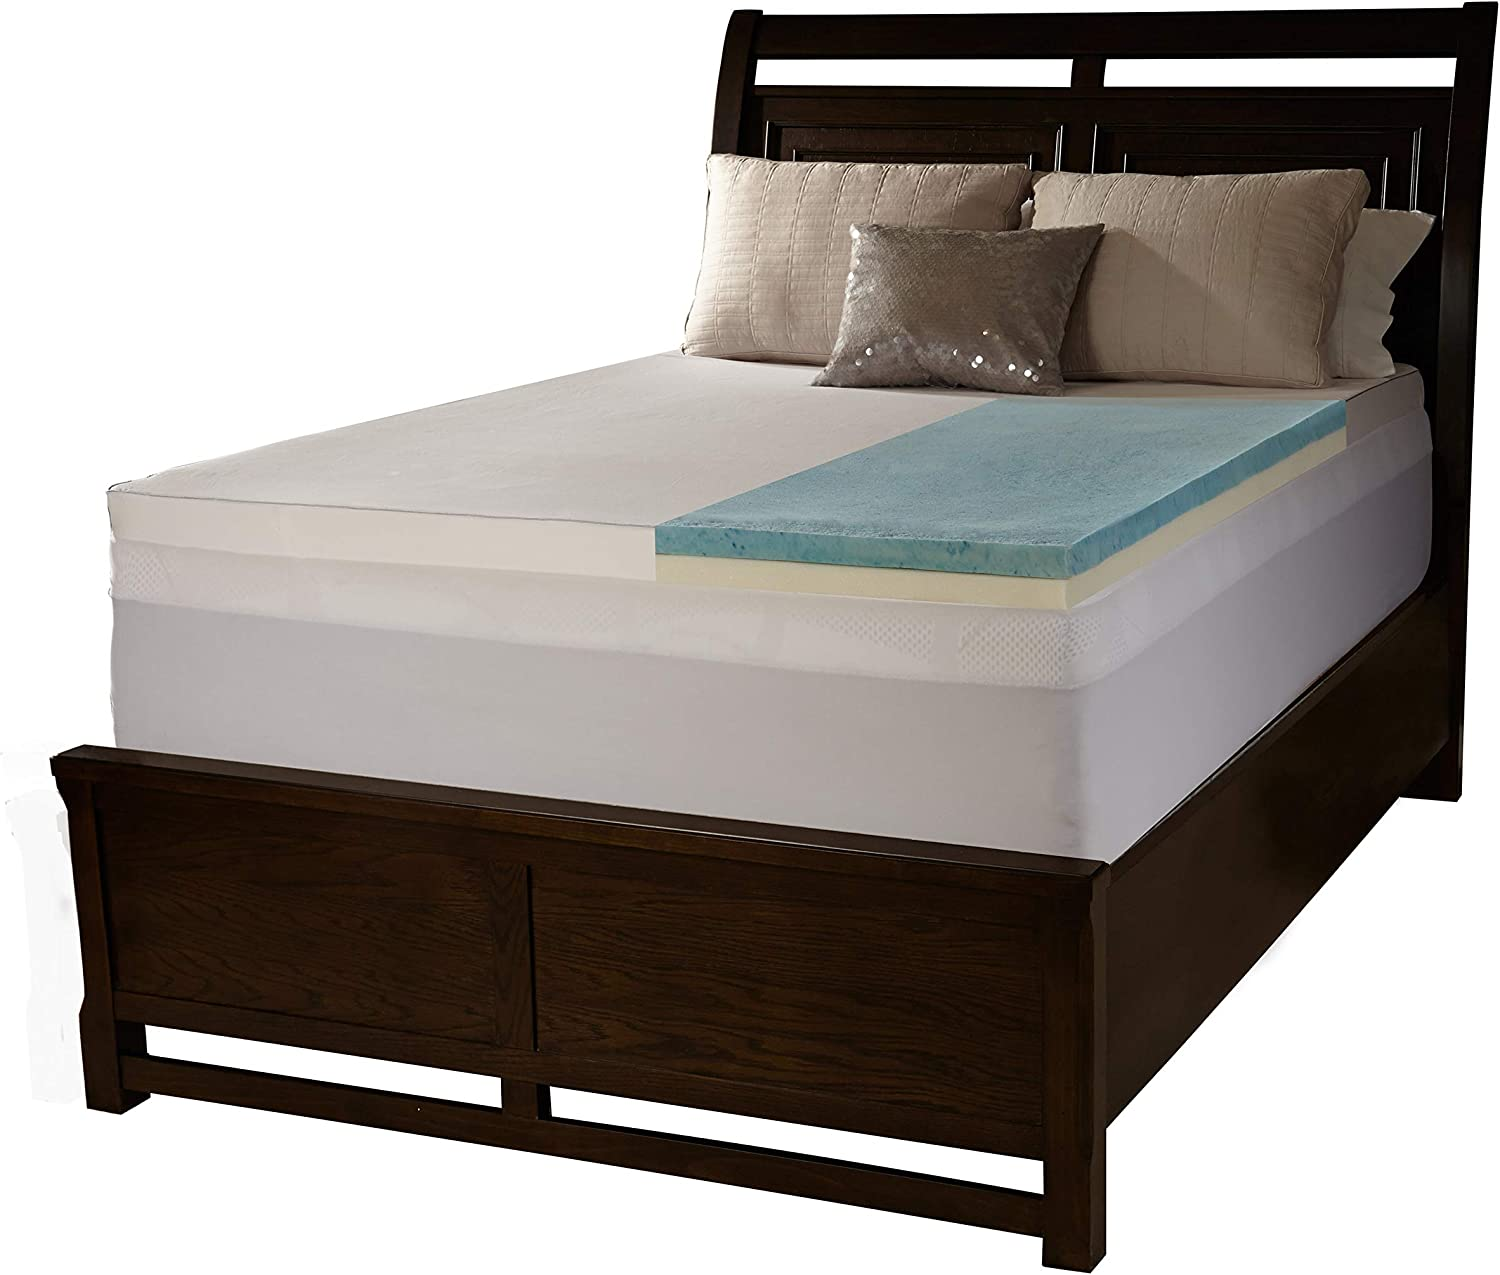 Simmons Beautyrest Comforpedic Loft from Beautyrest 3-inch Flat Select Gel Memory Foam Mattress Topper with Cover Full